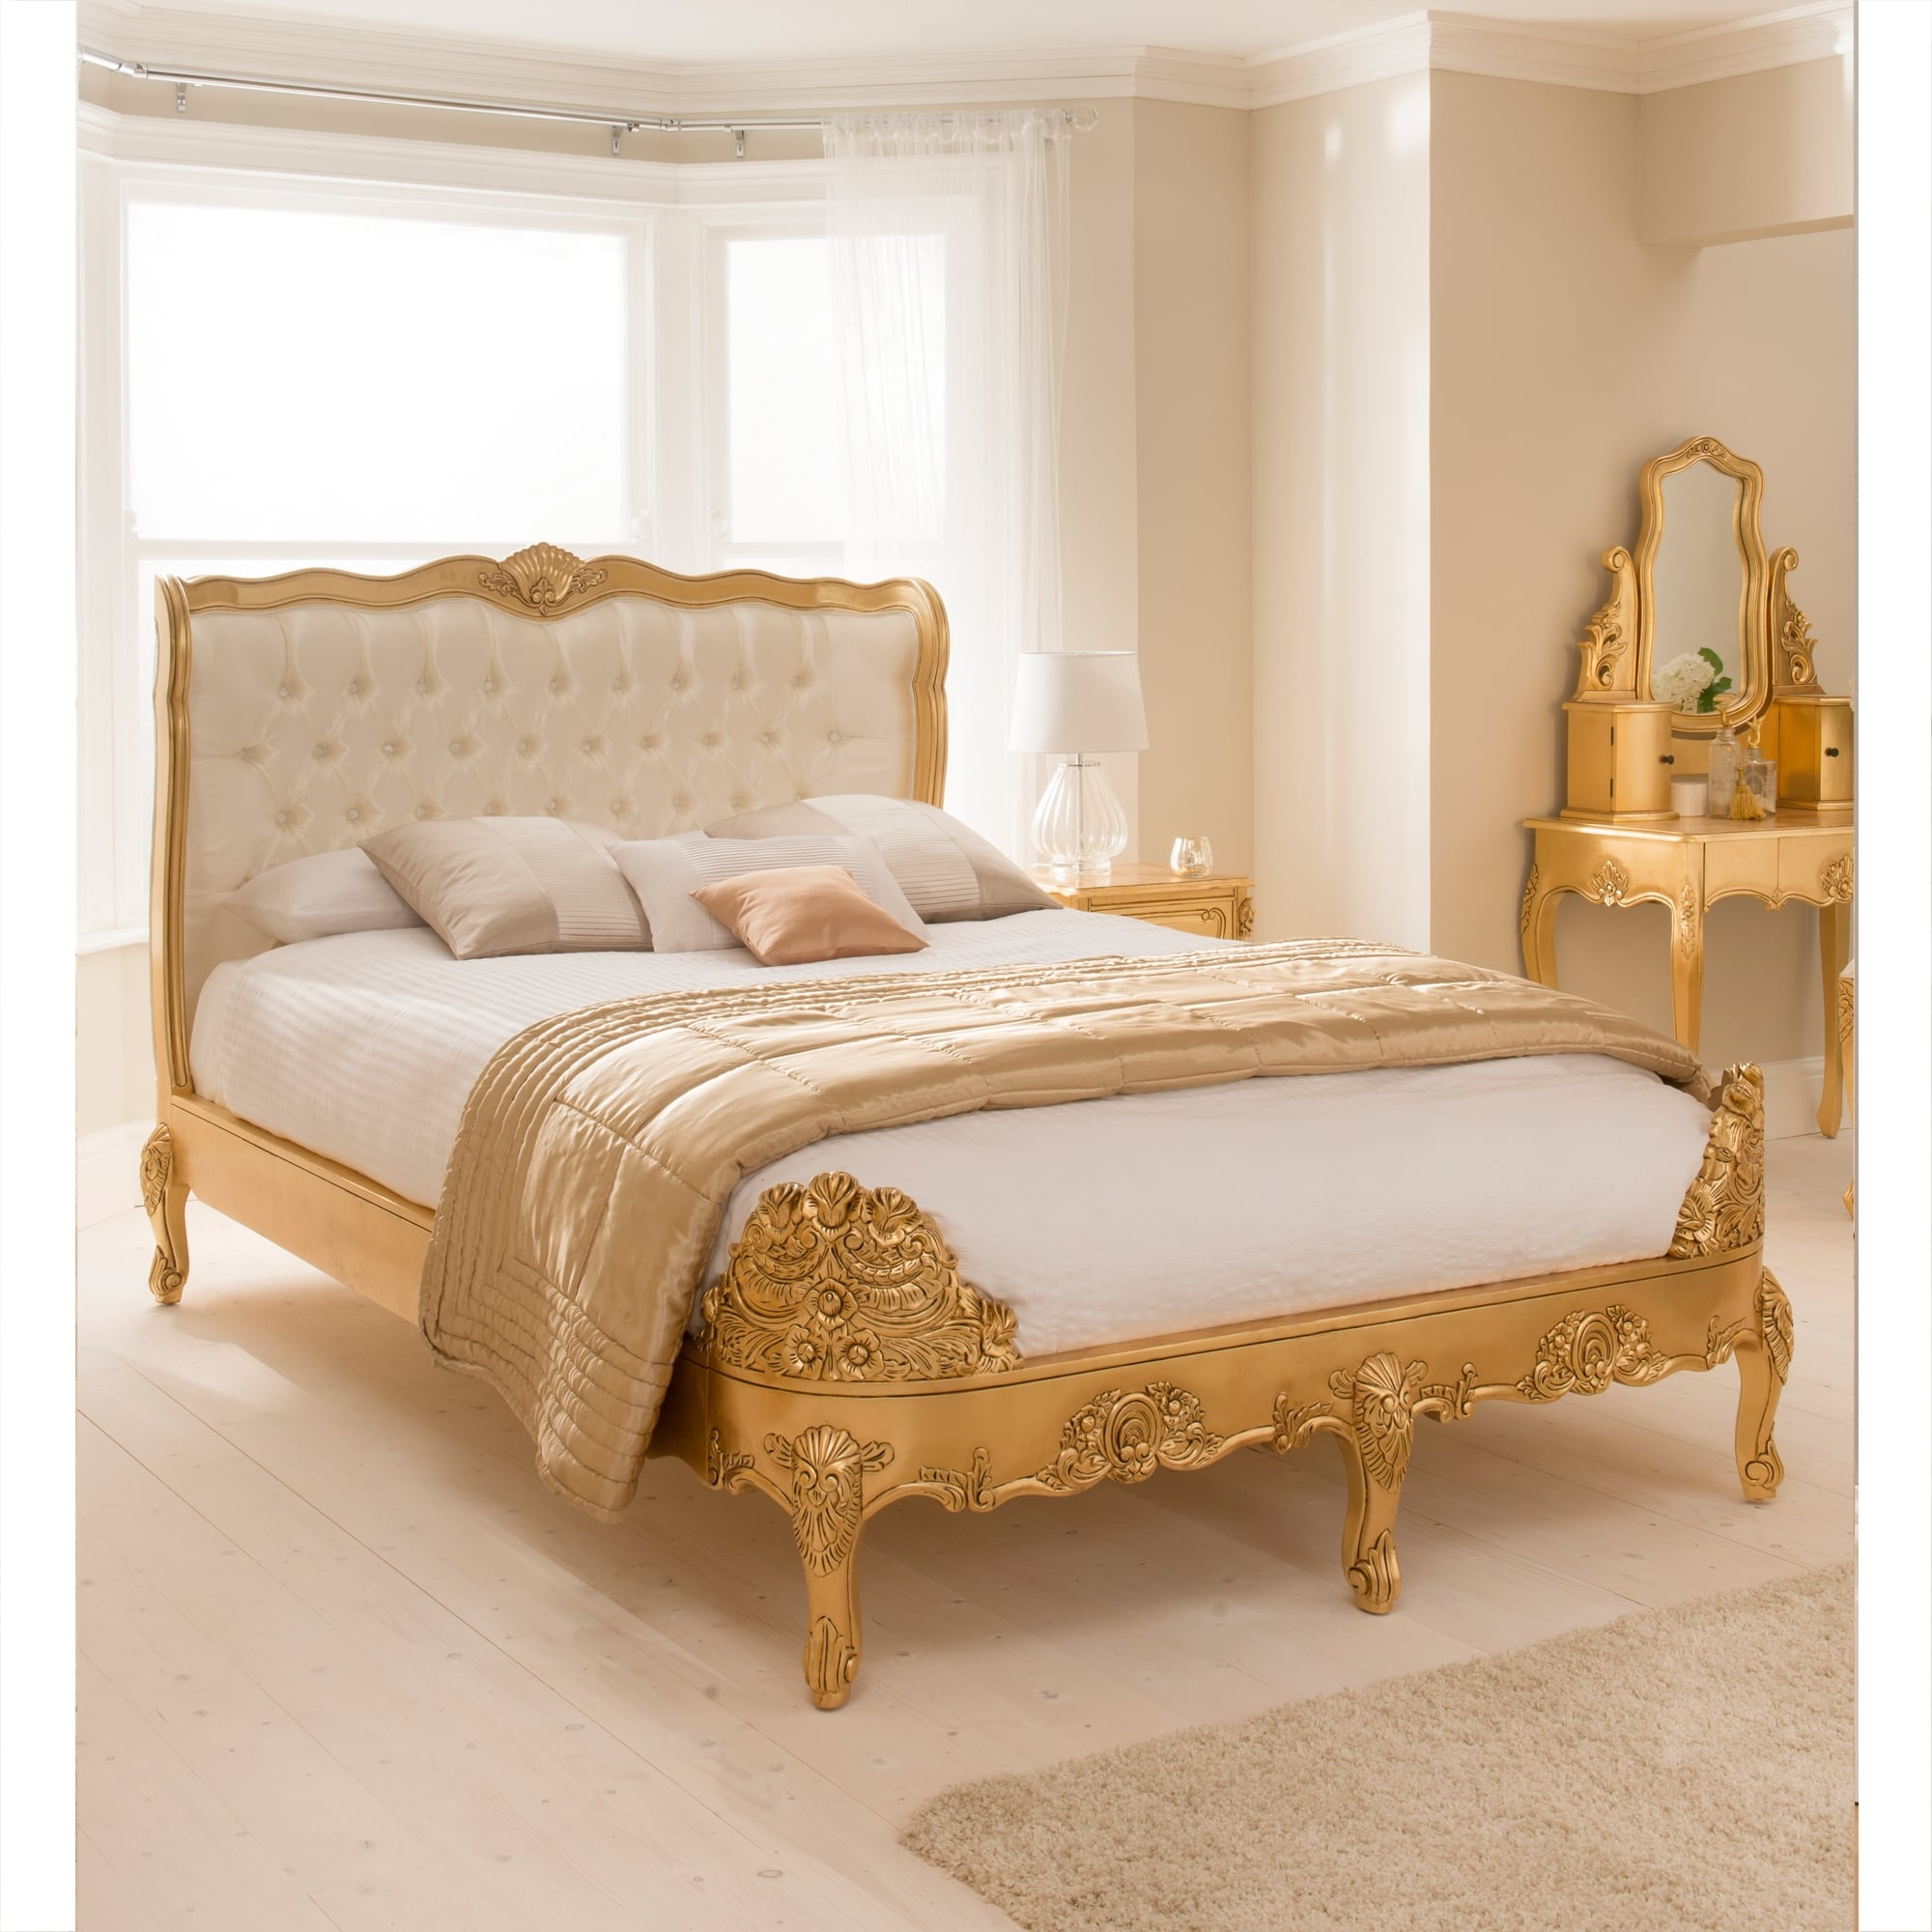 Gold Leaf Antique French Style Bed Online Furniture Store Kl Malaysia